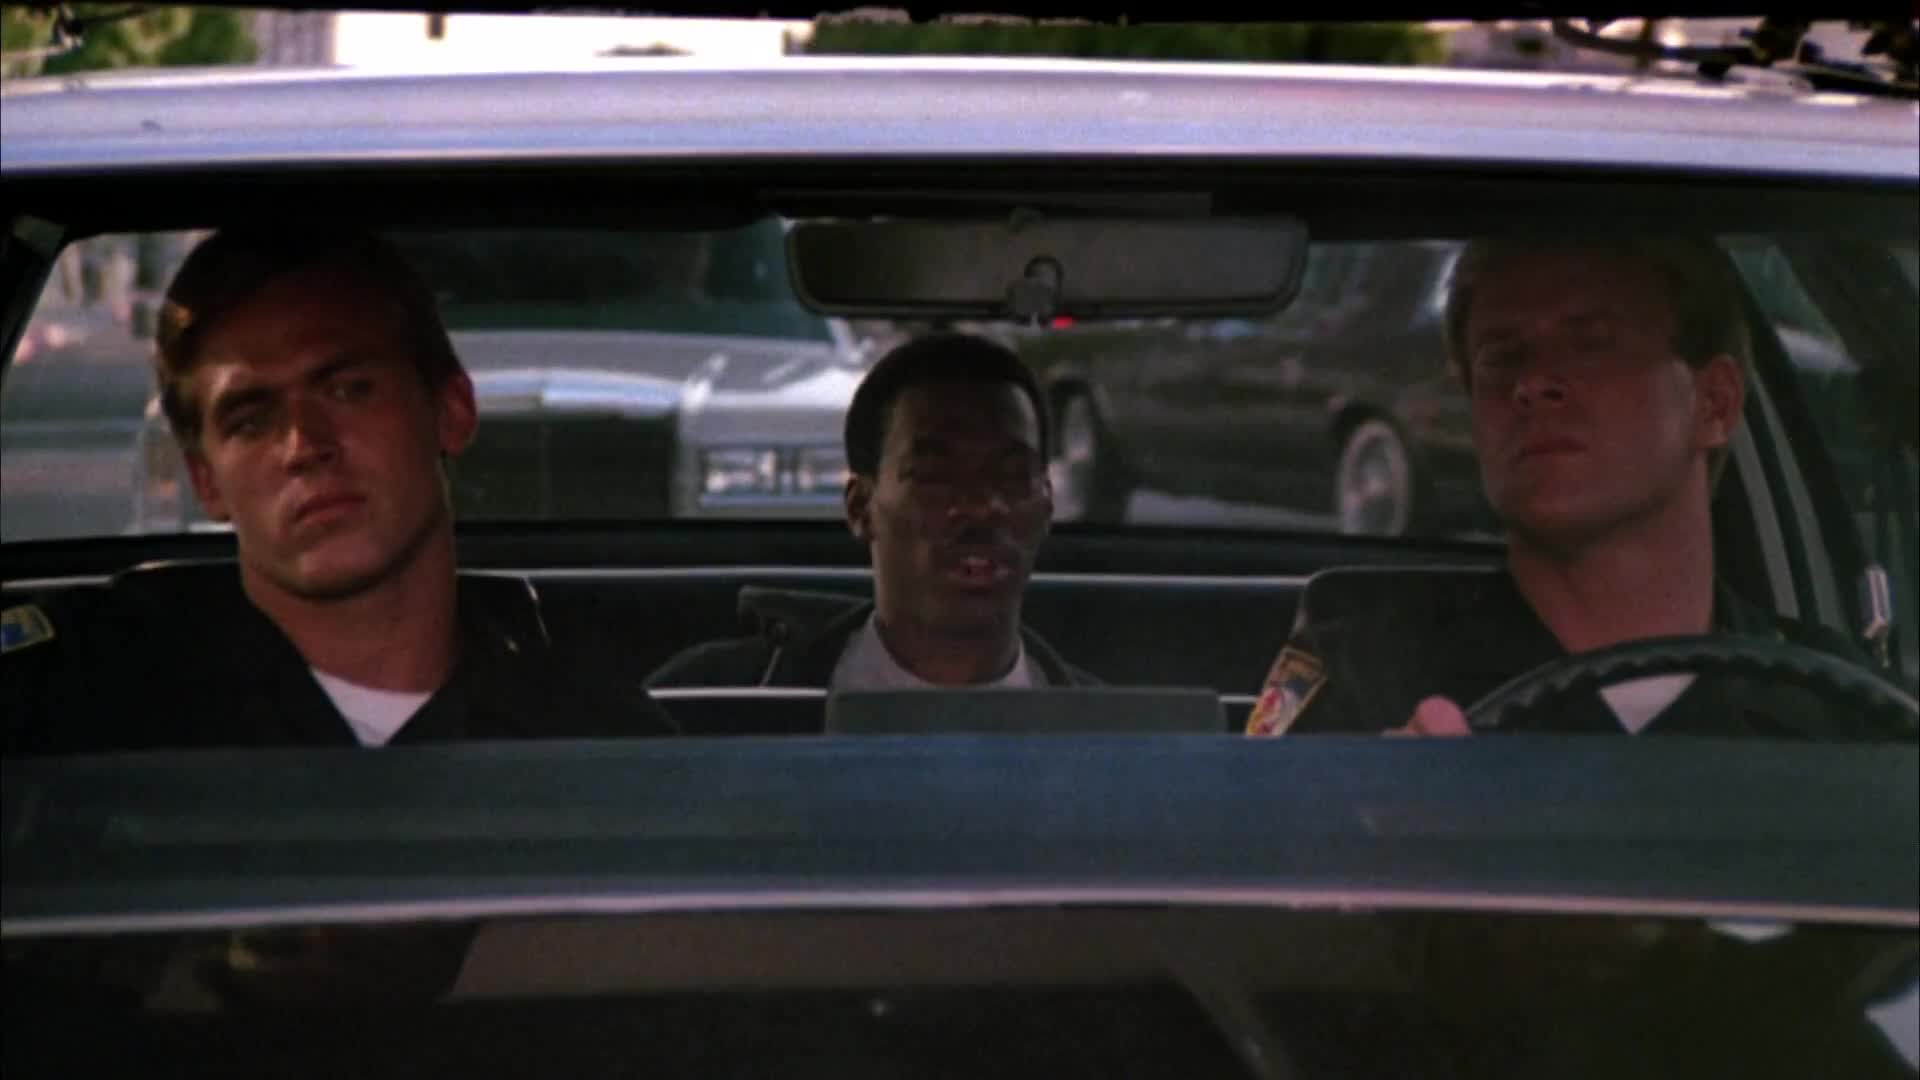 Beverly Hills Cop - Un piedipiatti a Beverly Hills full movie hd 1080p download kickass movie